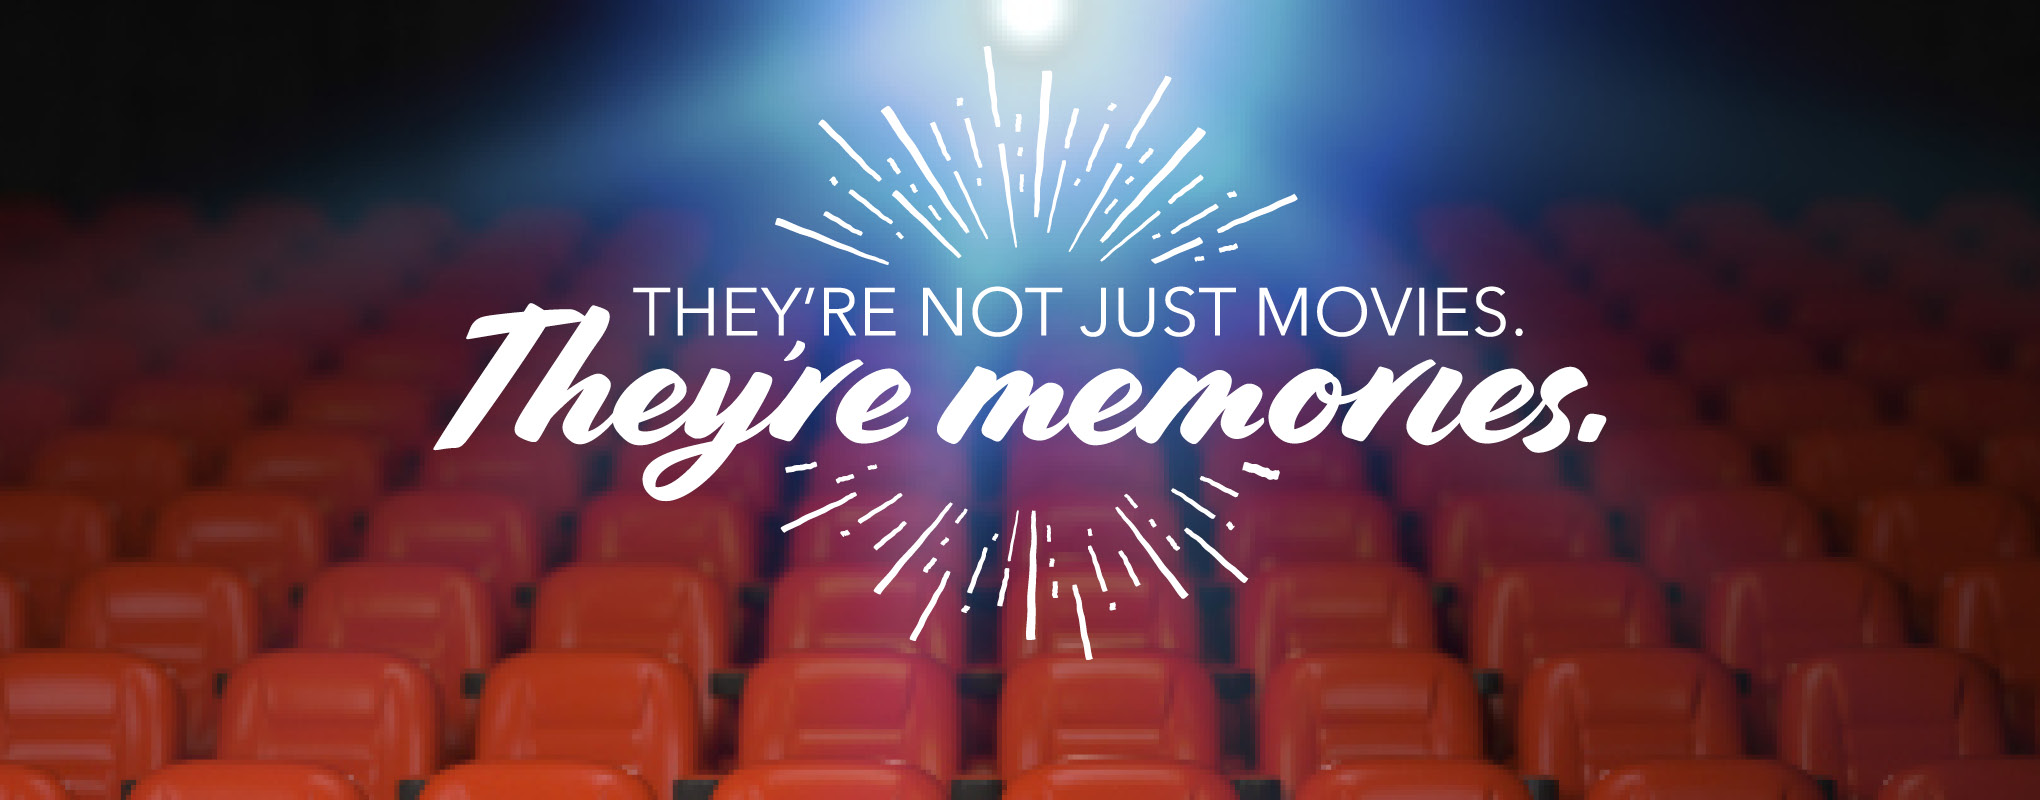 Movie Memories - Winners